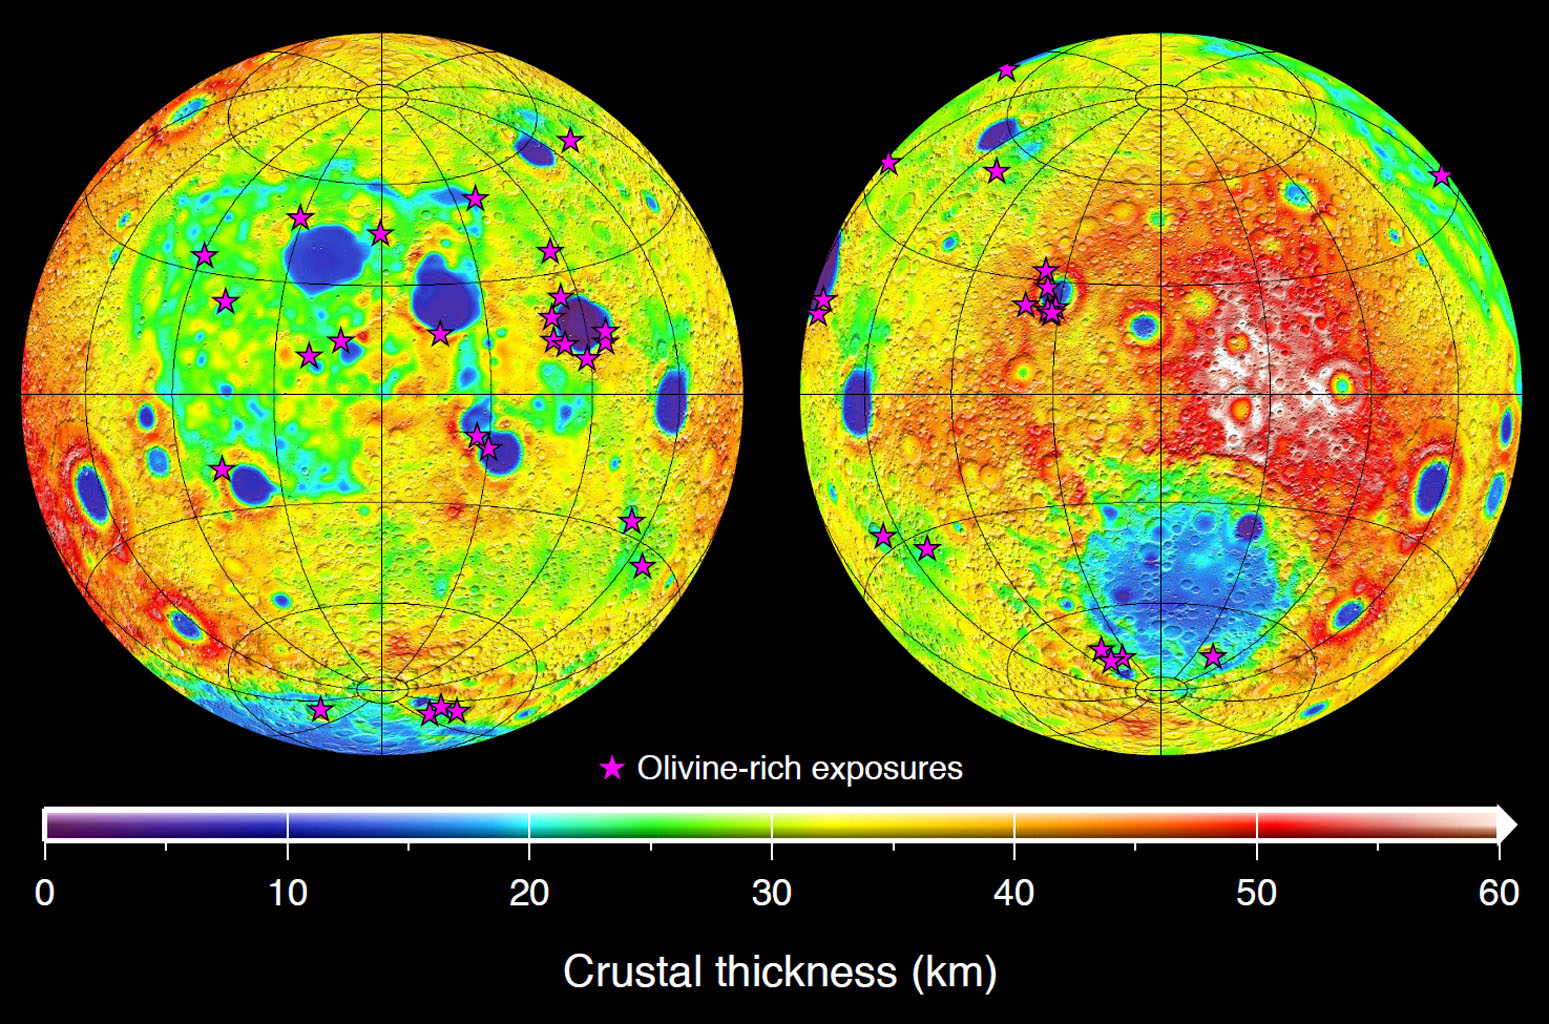 This graphic depicting the bulk density of the lunar highlands on the near and far sides of the moon was generated using gravity data from NASA's GRAIL mission and topography data from NASA's Lunar Reconnaissance Orbiter. This graphic depicting the bulk density of the lunar highlands on the near and far sides of the moon was generated using gravity data from NASA's GRAIL mission and topography data from NASA's Lunar Reconnaissance Orbiter. Red corresponds to higher than average densities and blue corresponds to lower than average densities. The average bulk density of the lunar highlands crust is 2,550 kilograms per meter cubed, which is 12 percent lower than generally assumed. White denotes regions that contain mare basalts (thin lines) and that were not analyzed. Solid circles correspond to prominent impact basins. The largest basin on the moon's far side hemisphere, the South Pole-Aitken basin, has a higher than average density that reflects its atypical iron-rich surface composition. Image credit: NASA/JPL-Caltech/IPGP